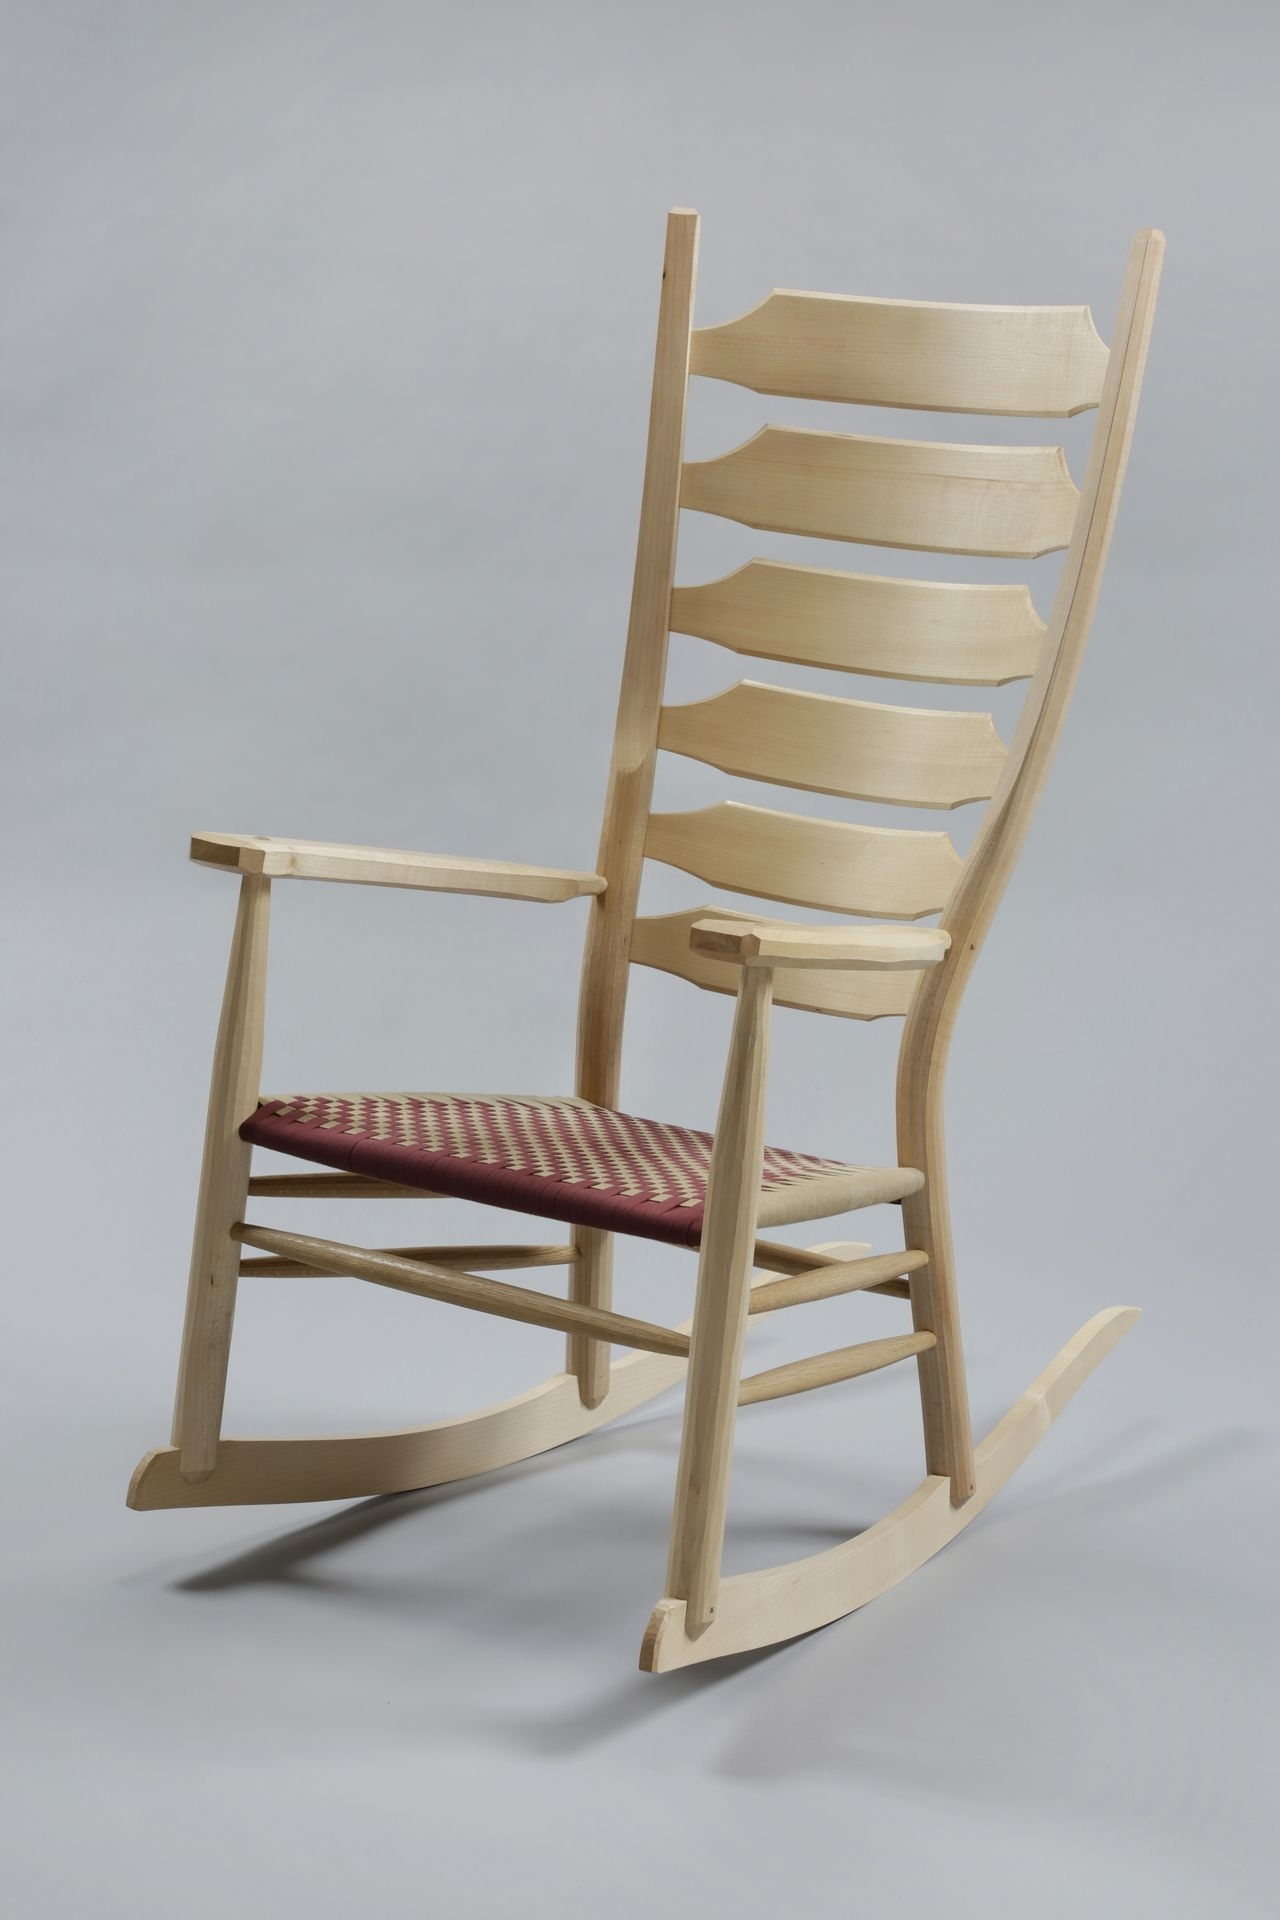 Famous Rocking Chairs At Gumtree With Regard To Gumtree Rocking Chair #e53b7b7b0c50 – Draxysoft (View 19 of 20)